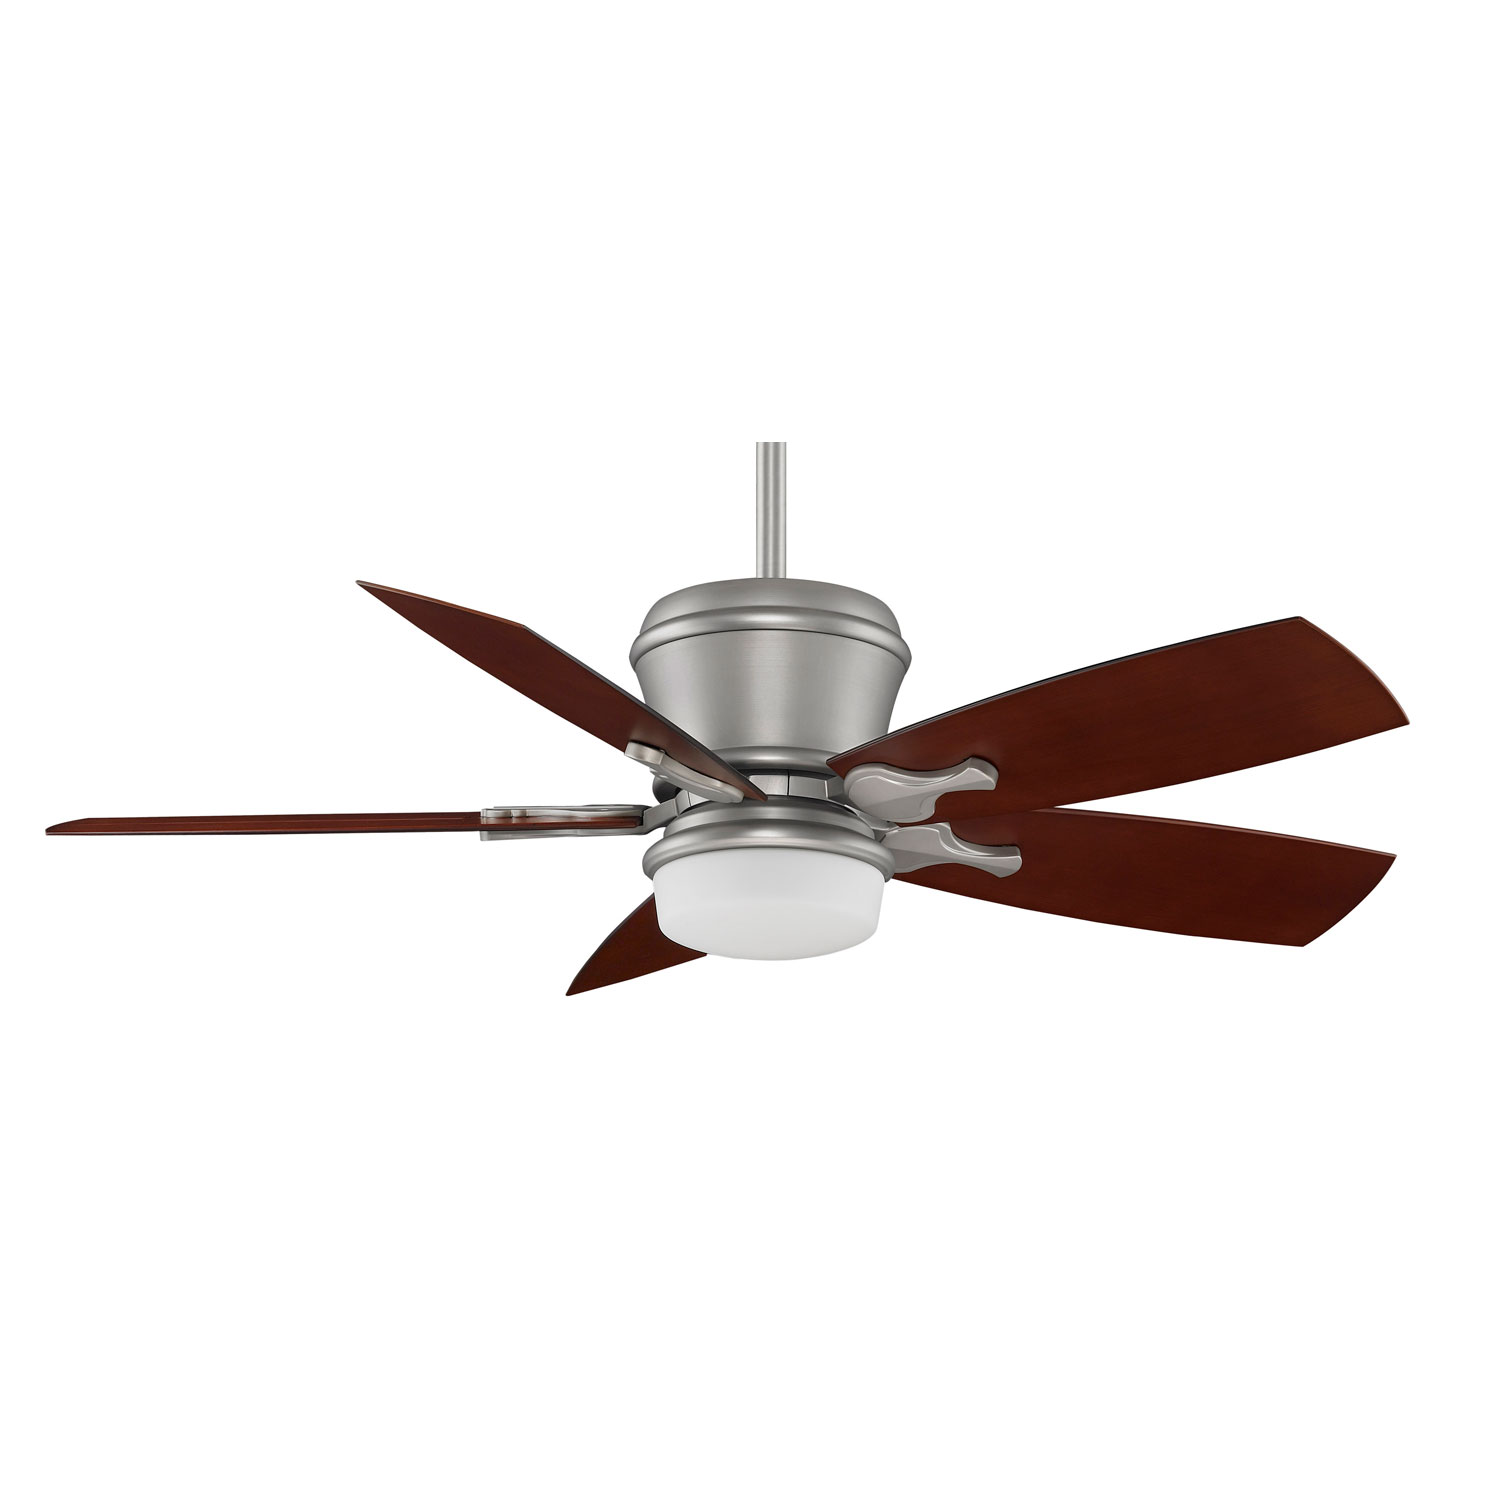 20 inch ceiling fan photo - 5